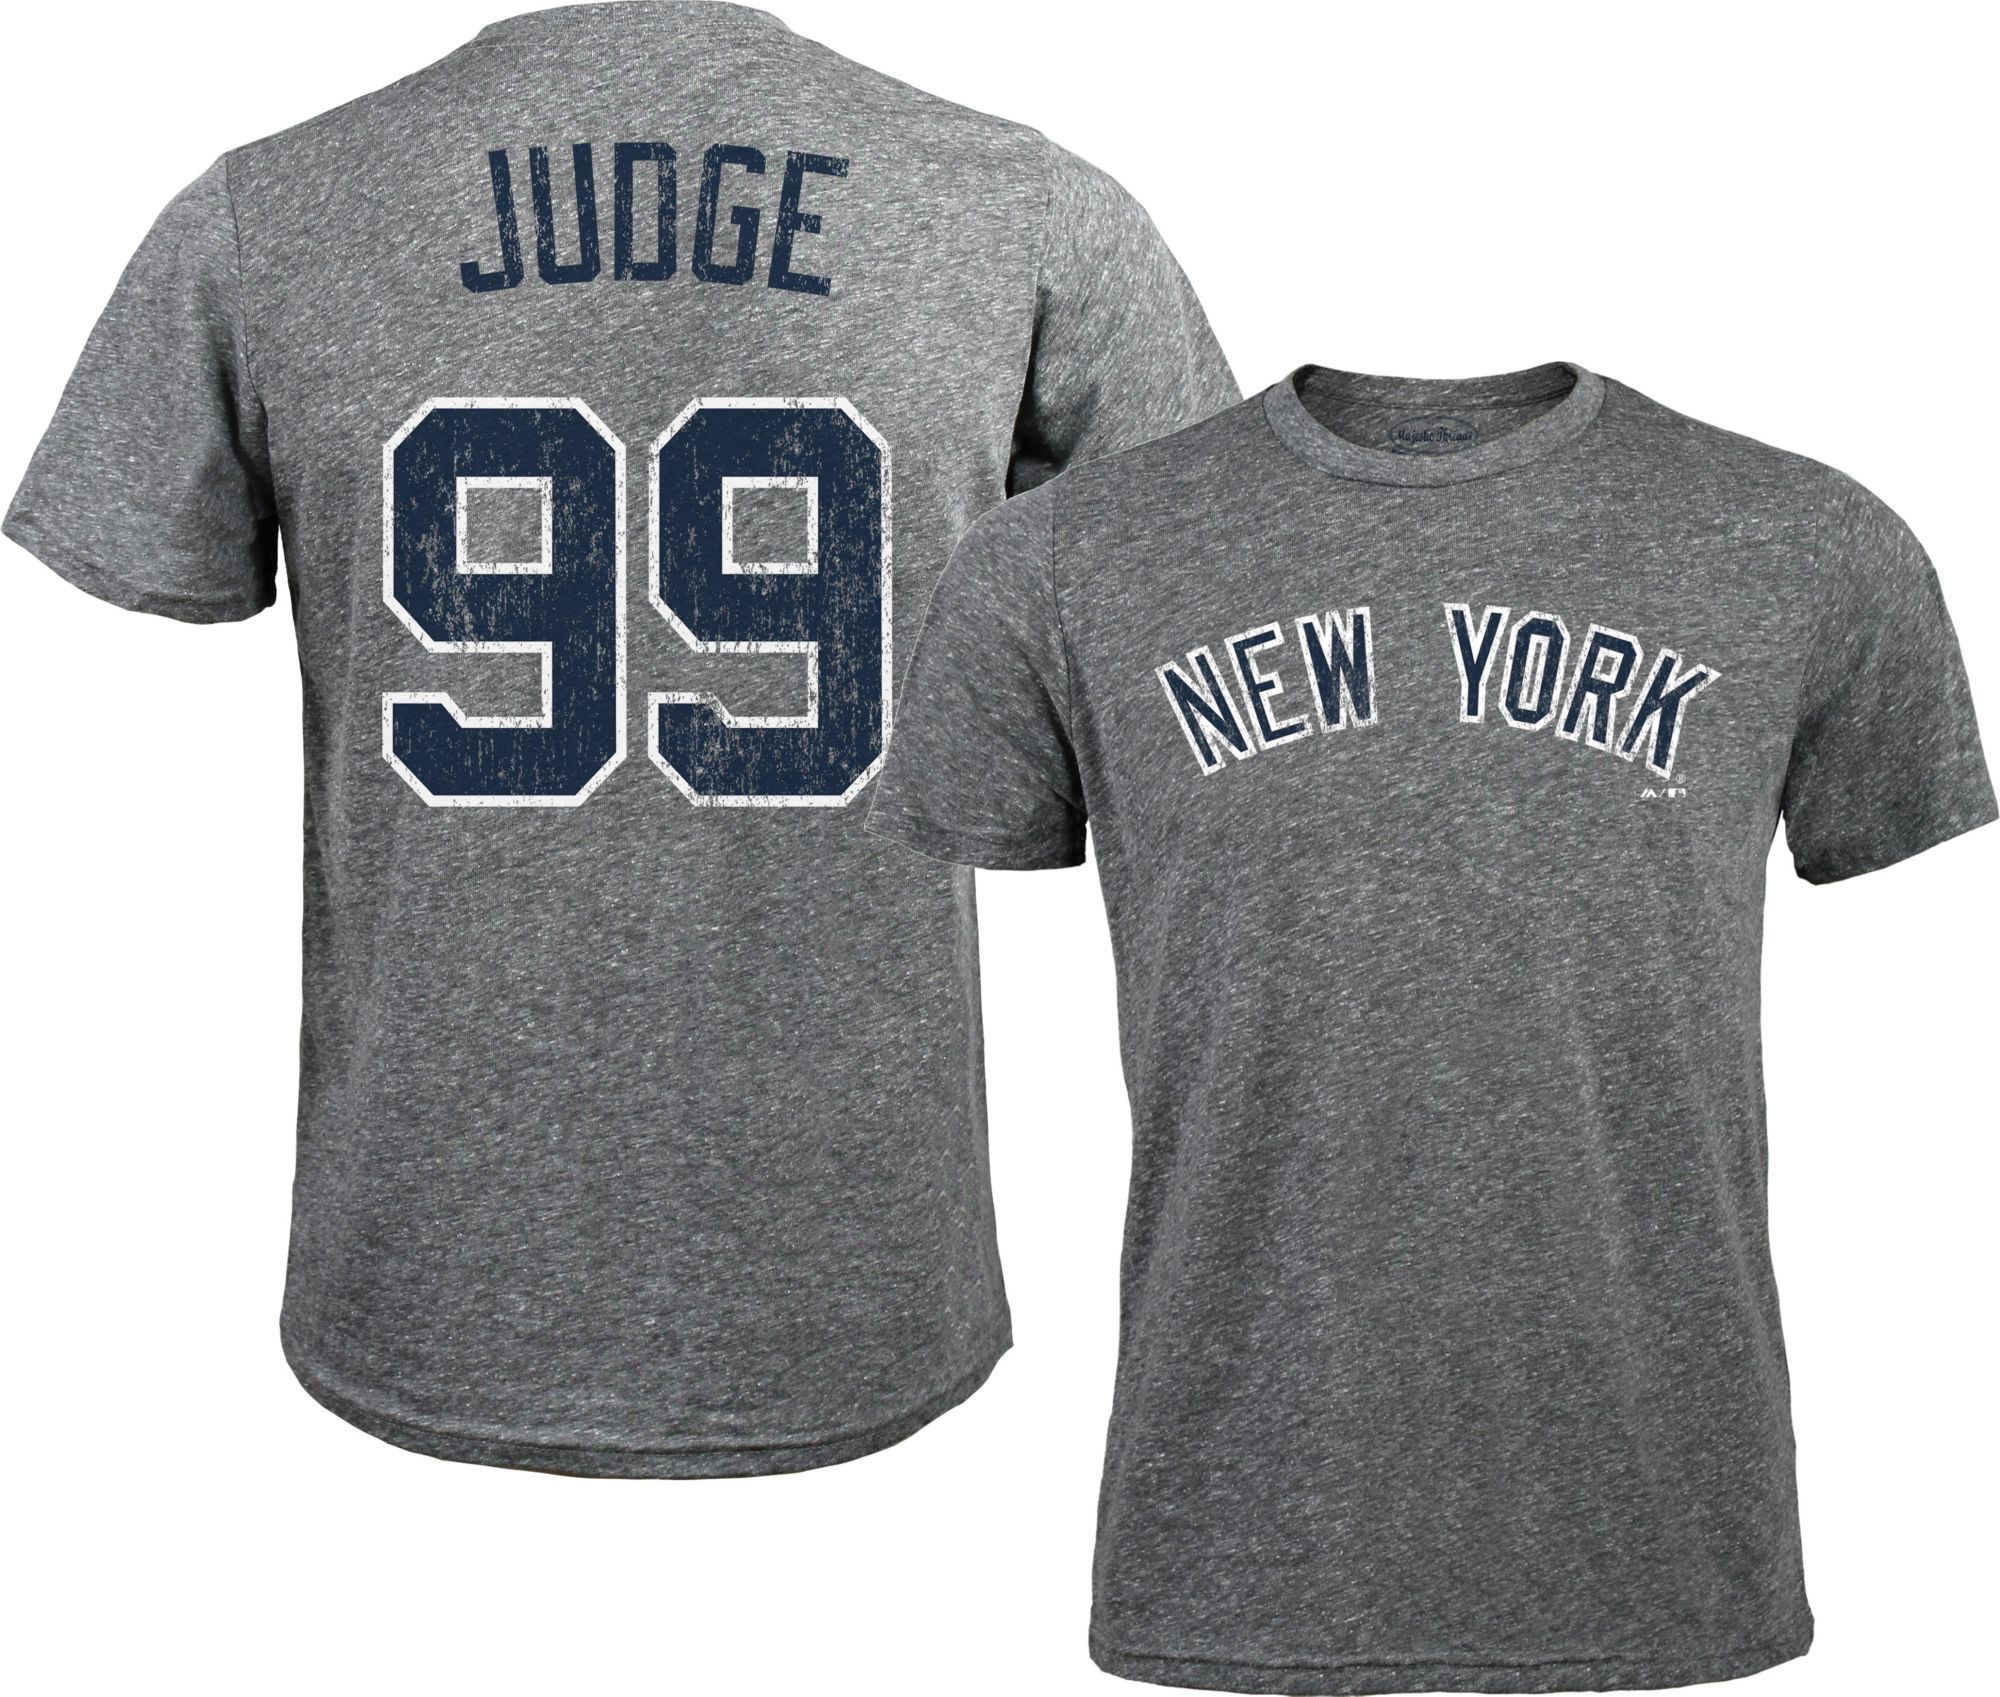 the latest b9e14 f8ce7 promo code new york yankees jersey t shirt 654ca c740b